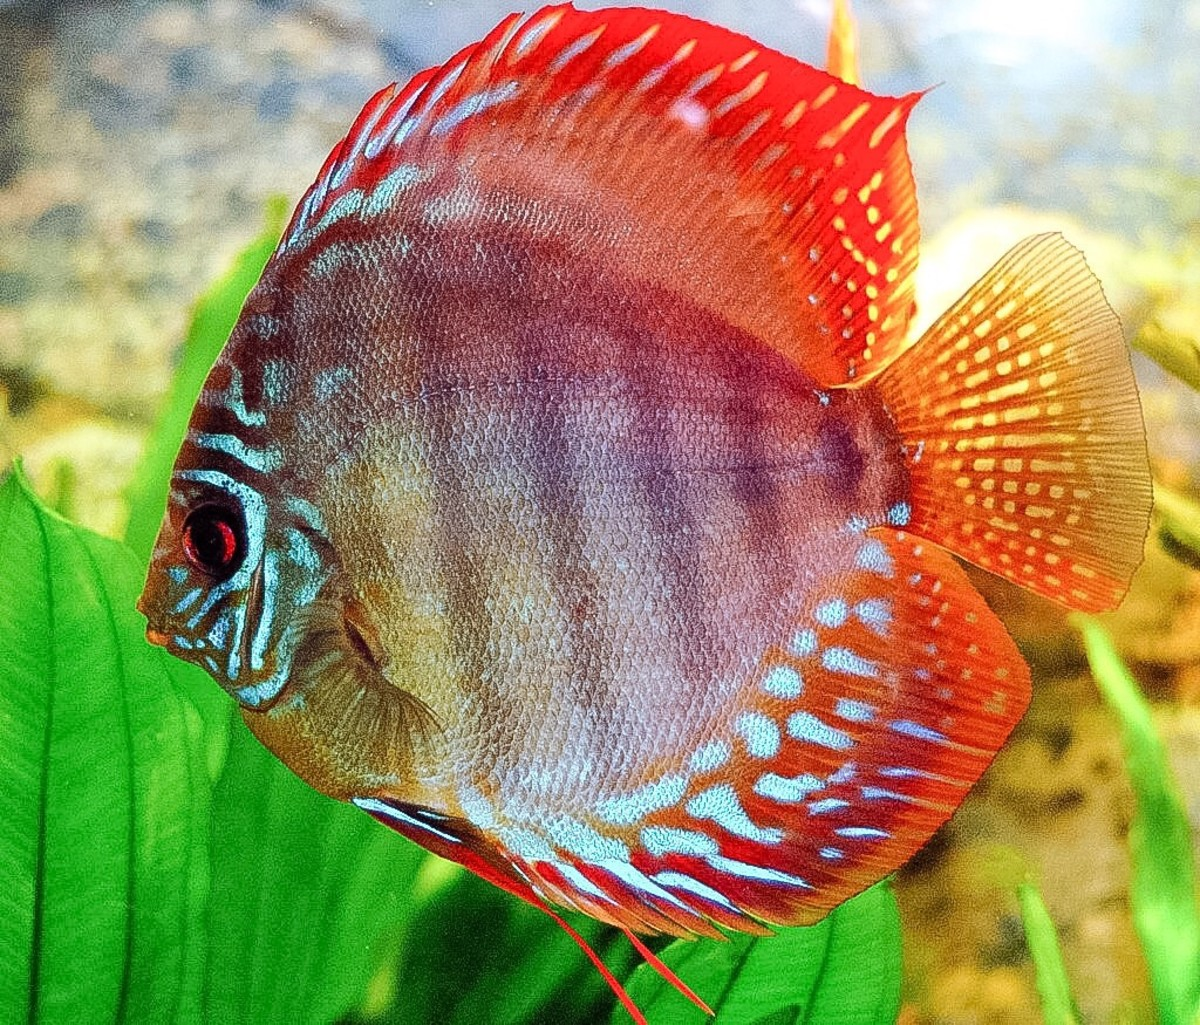 Fish Mucus: Composition, Functions, and Potential Uses